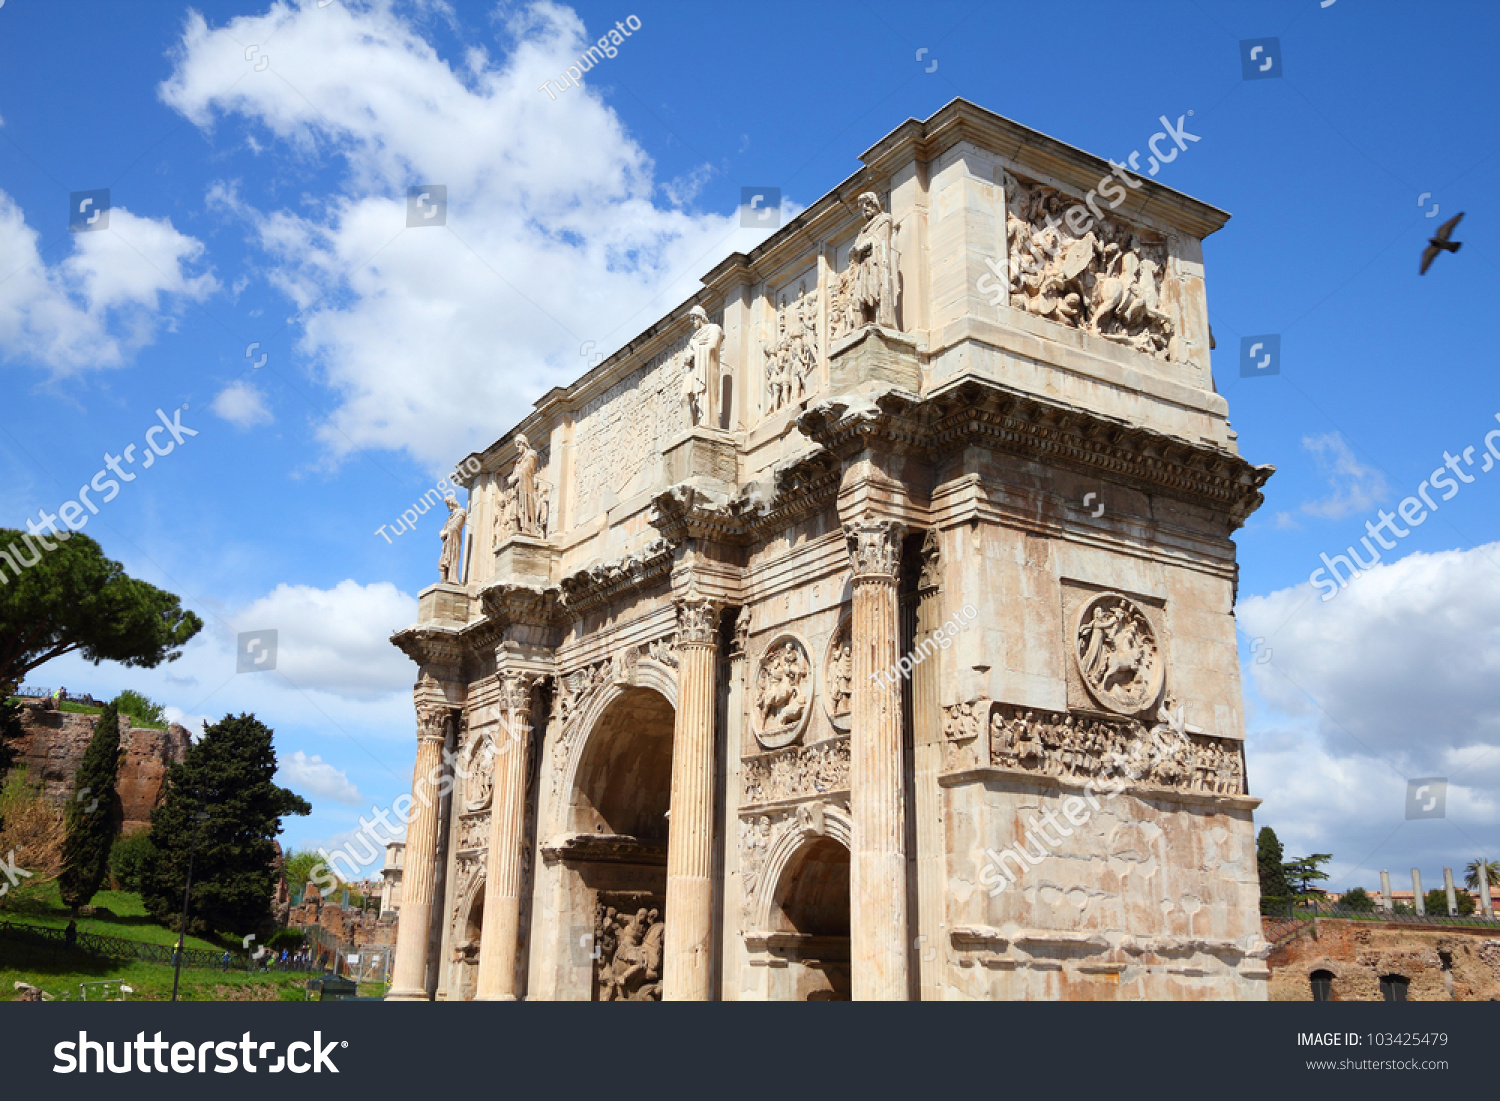 stock-photo-italy-rome-famous-triumphal-